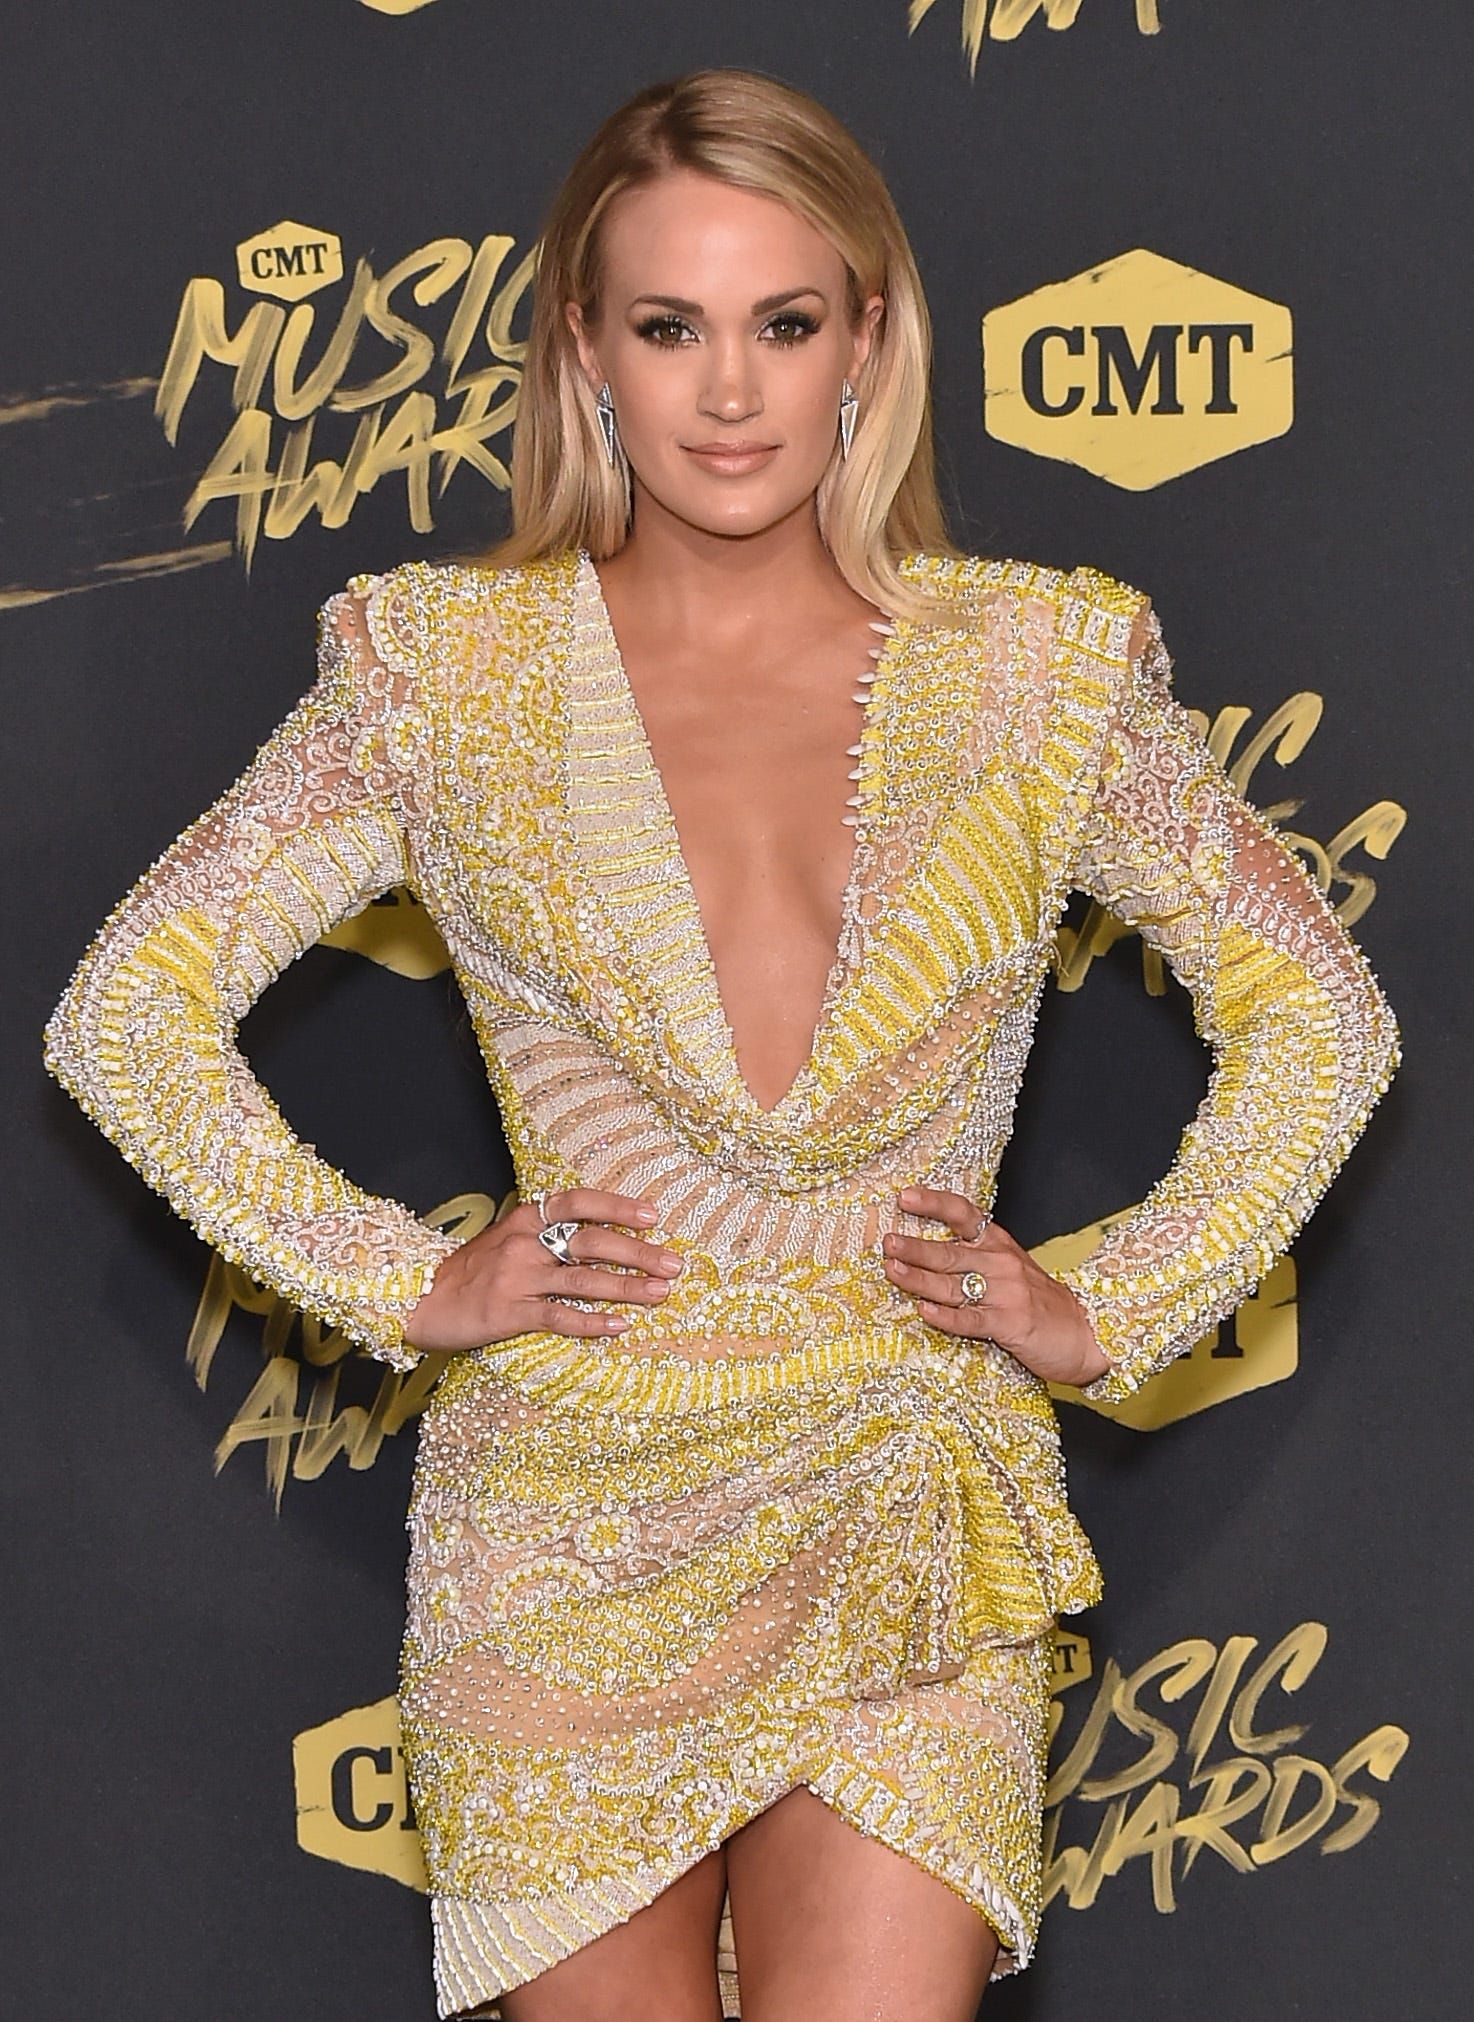 Carrie Underwood Just Announced Shes Pregnant With Her Second Child pics